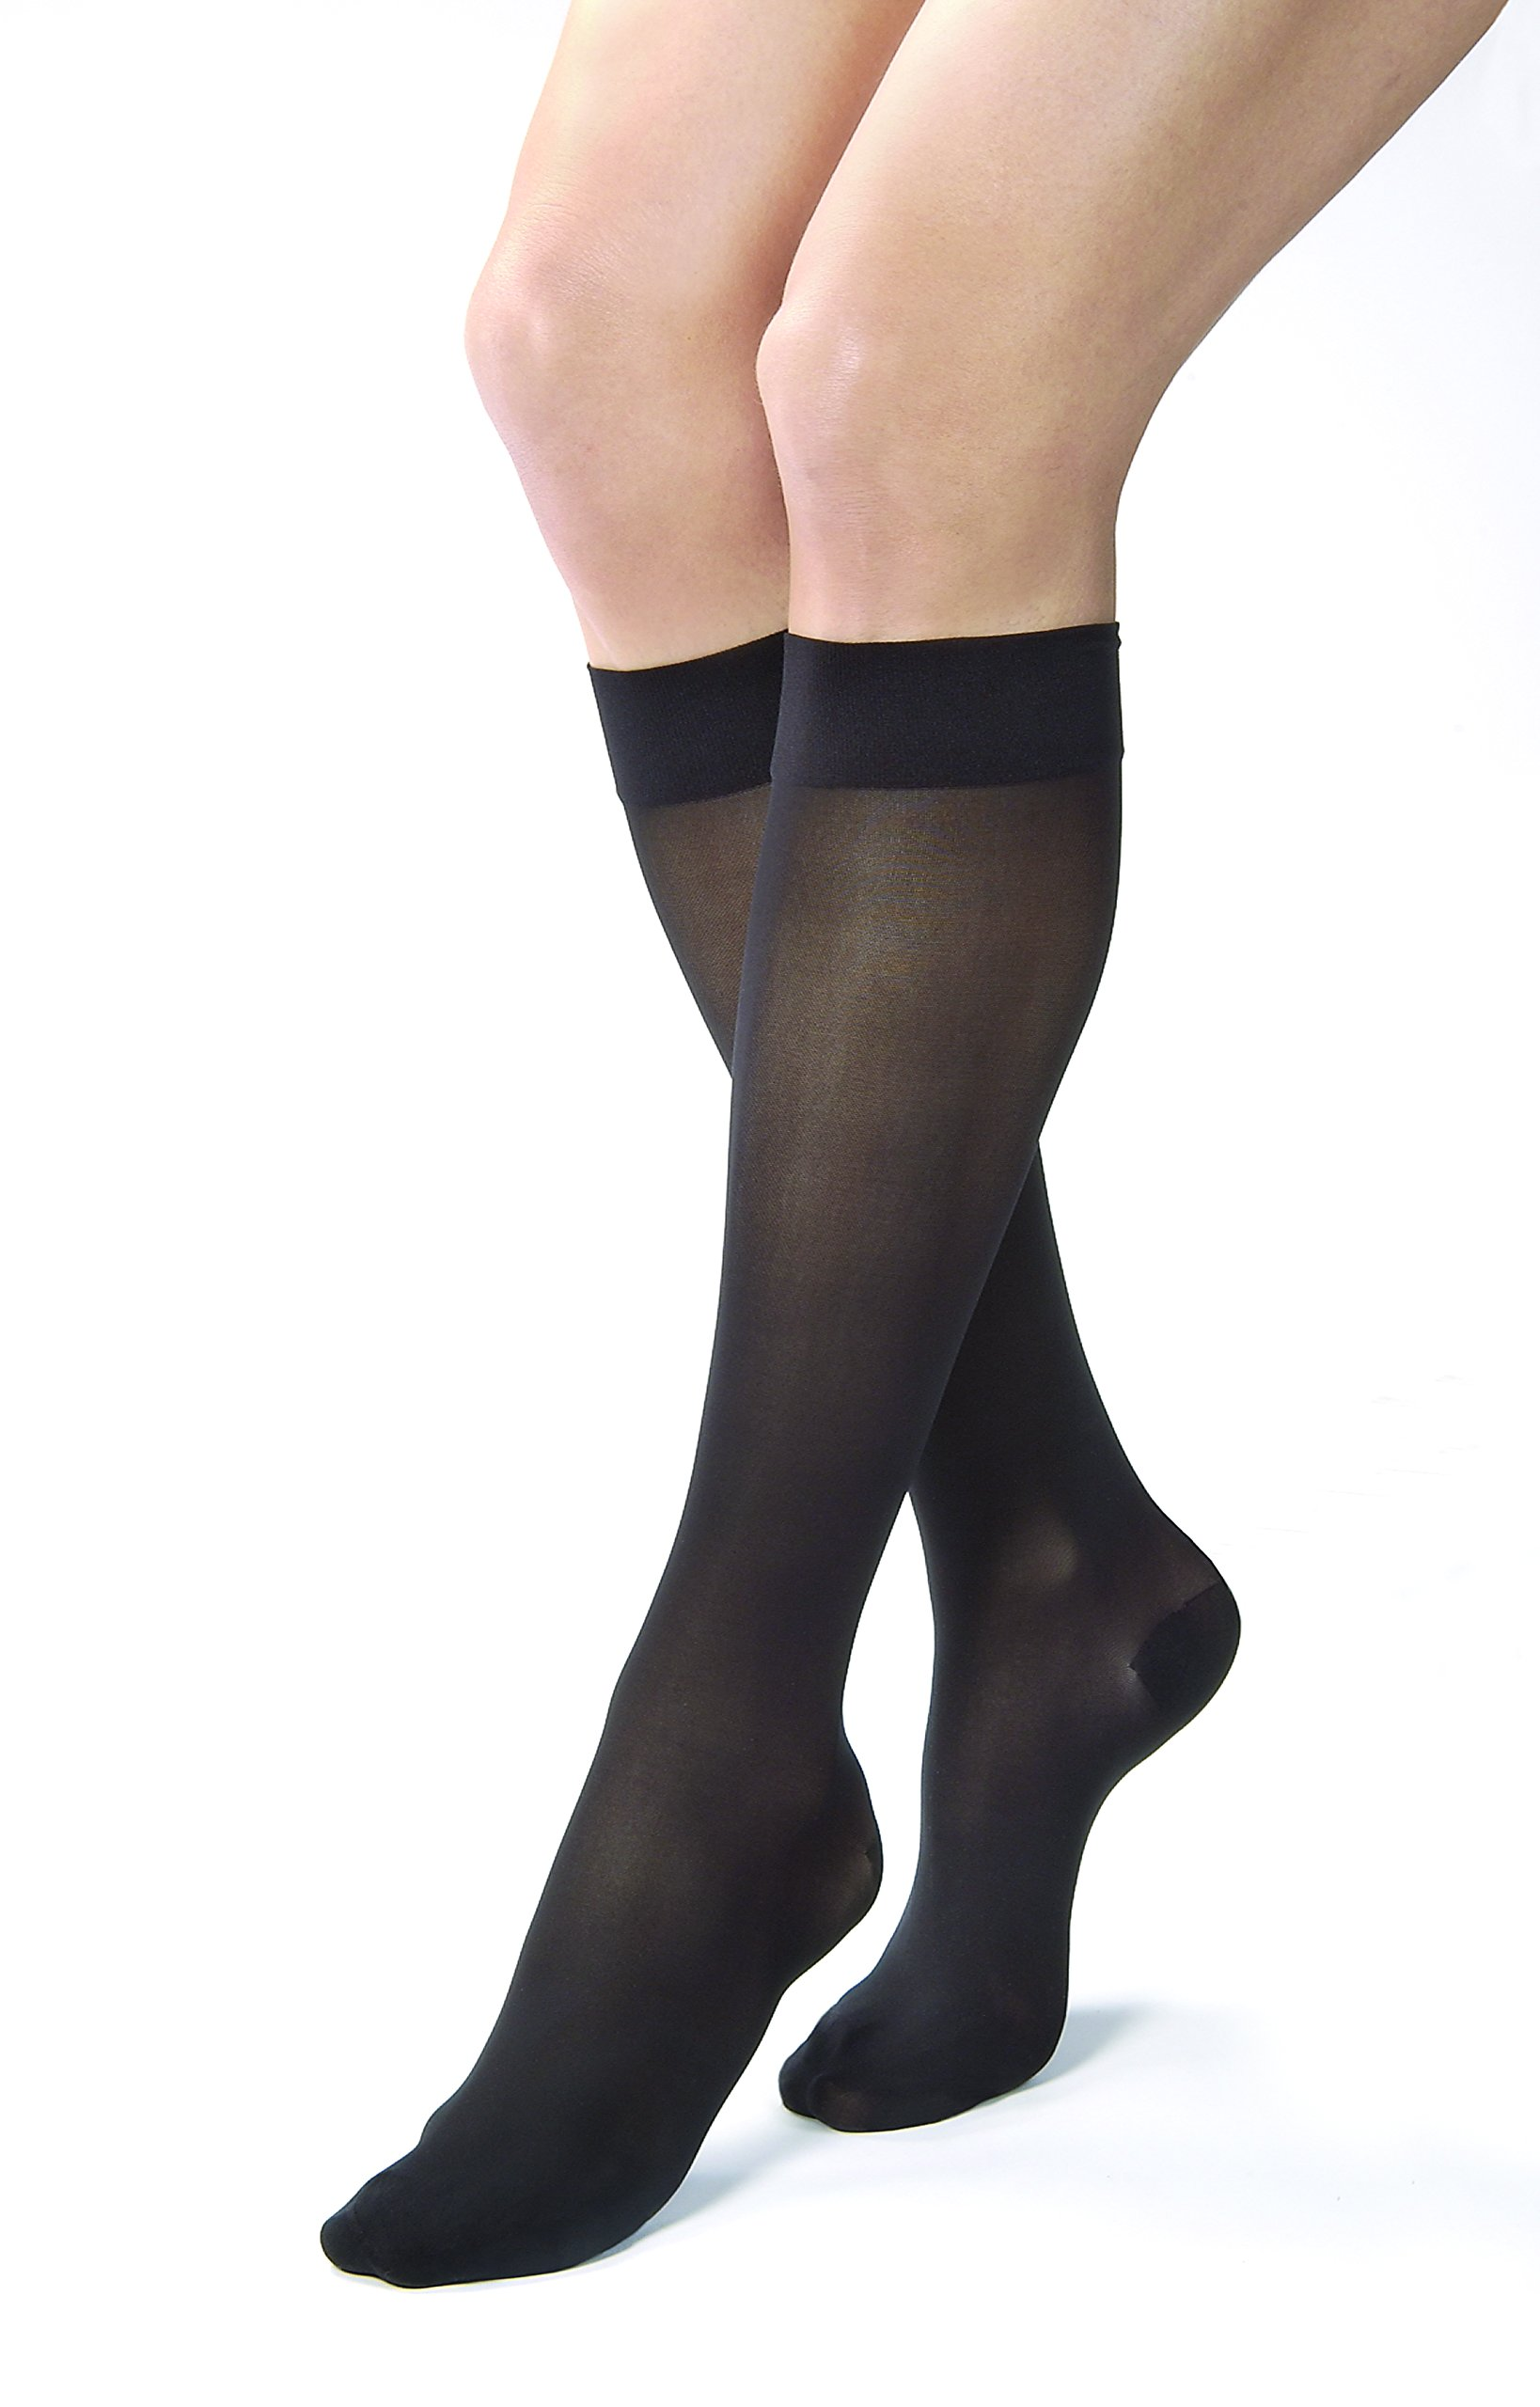 4263d9723 Jobst Women's UltraSheer Light Support Knee Highs,Classic Black, ...